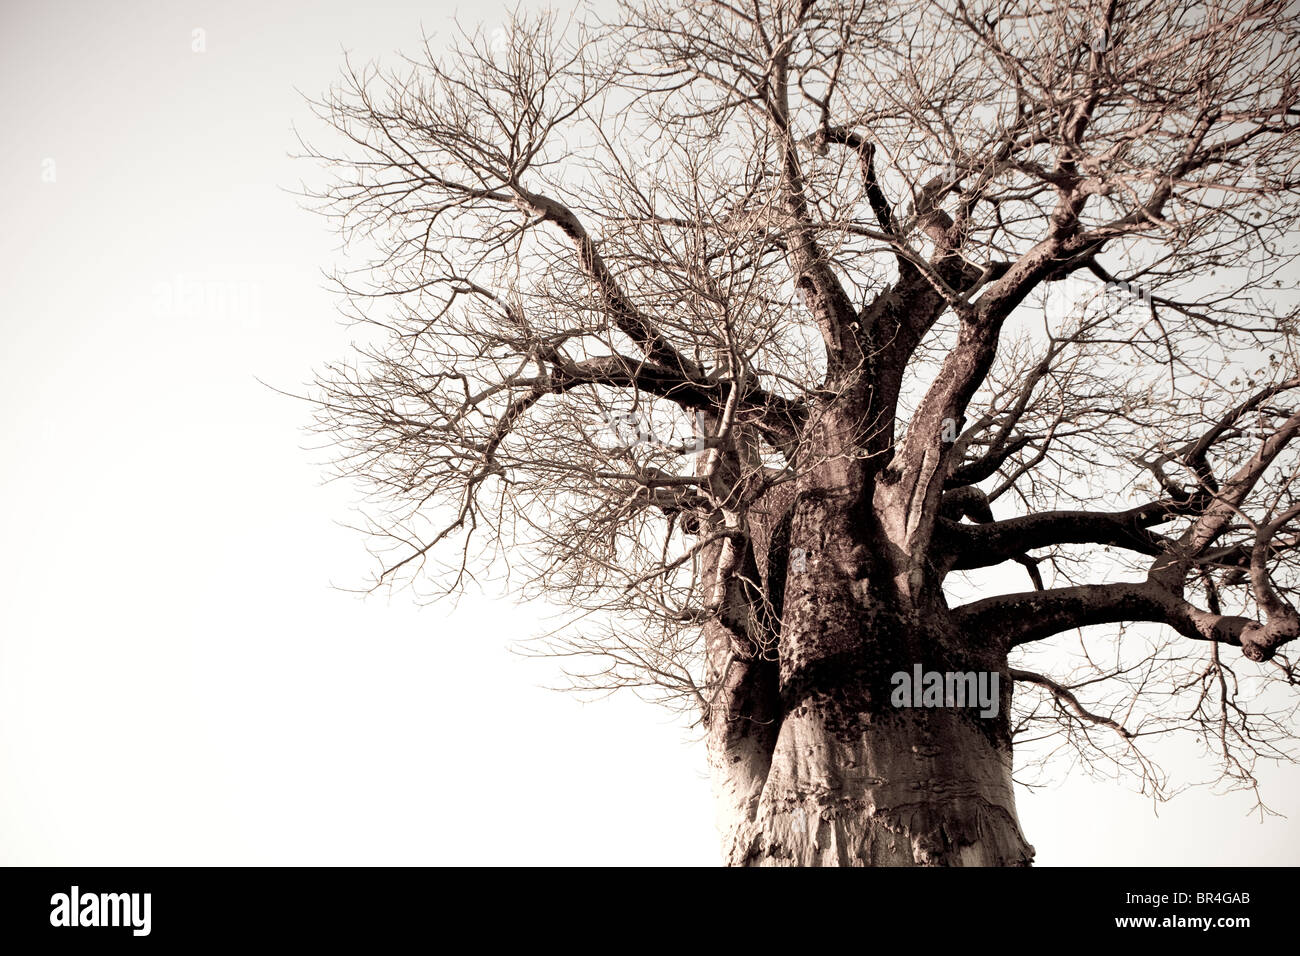 Boabab Tree in Savuti, Chobe National Park, Botswana - Stock Image